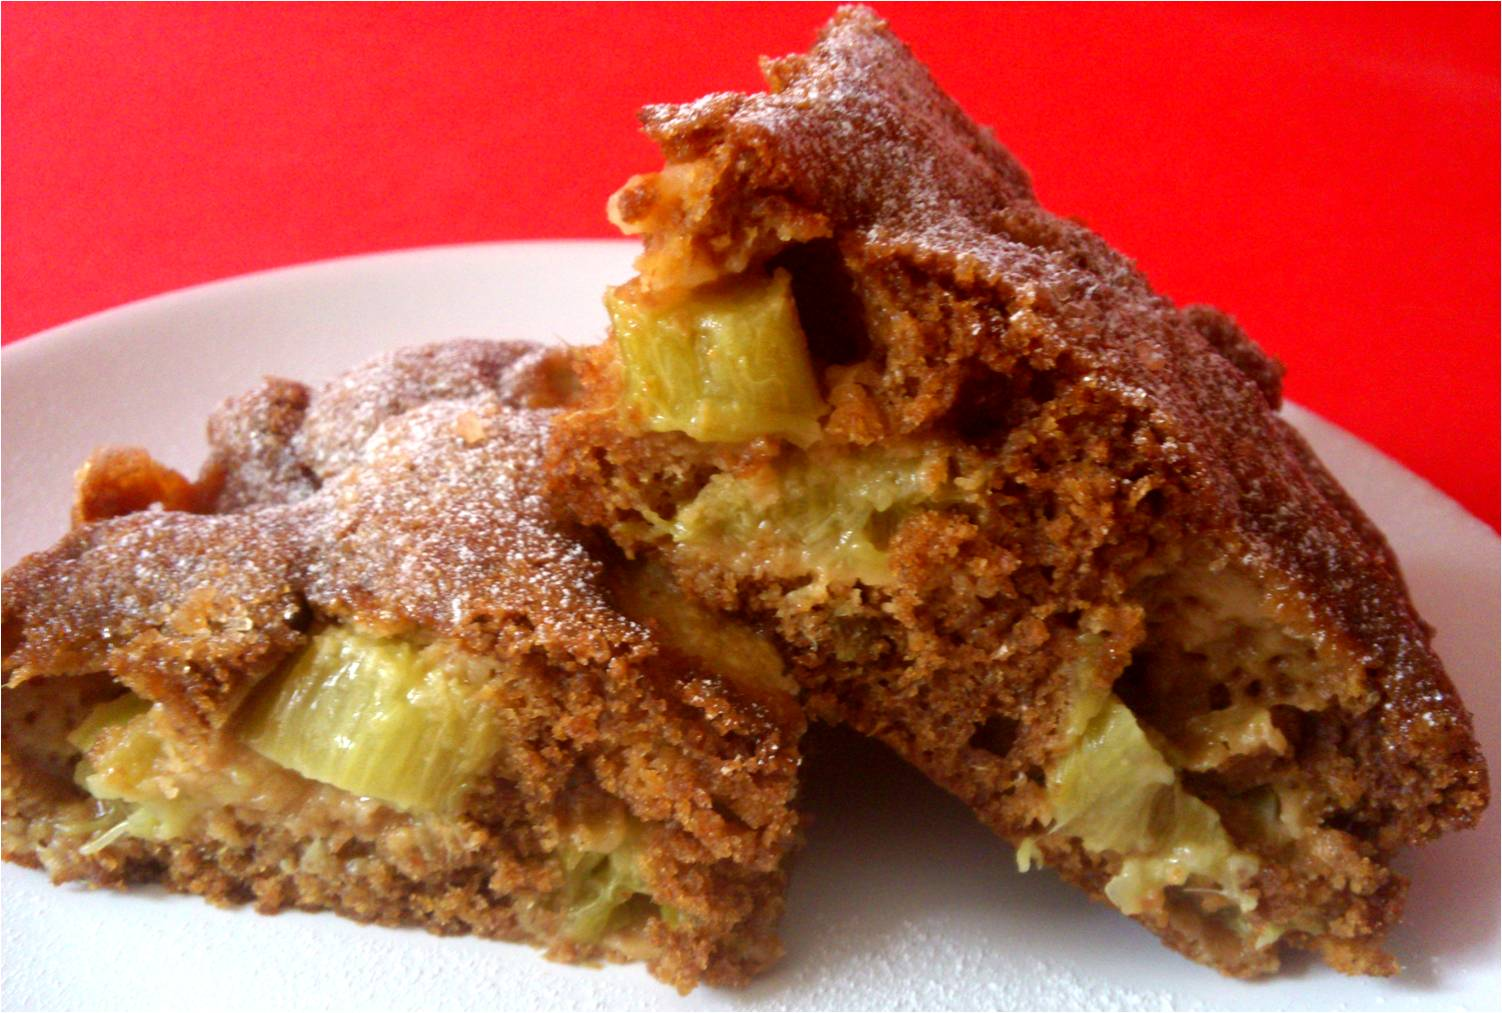 Utterly Scrummy Food For Families: Rhubarb Ginger Cake